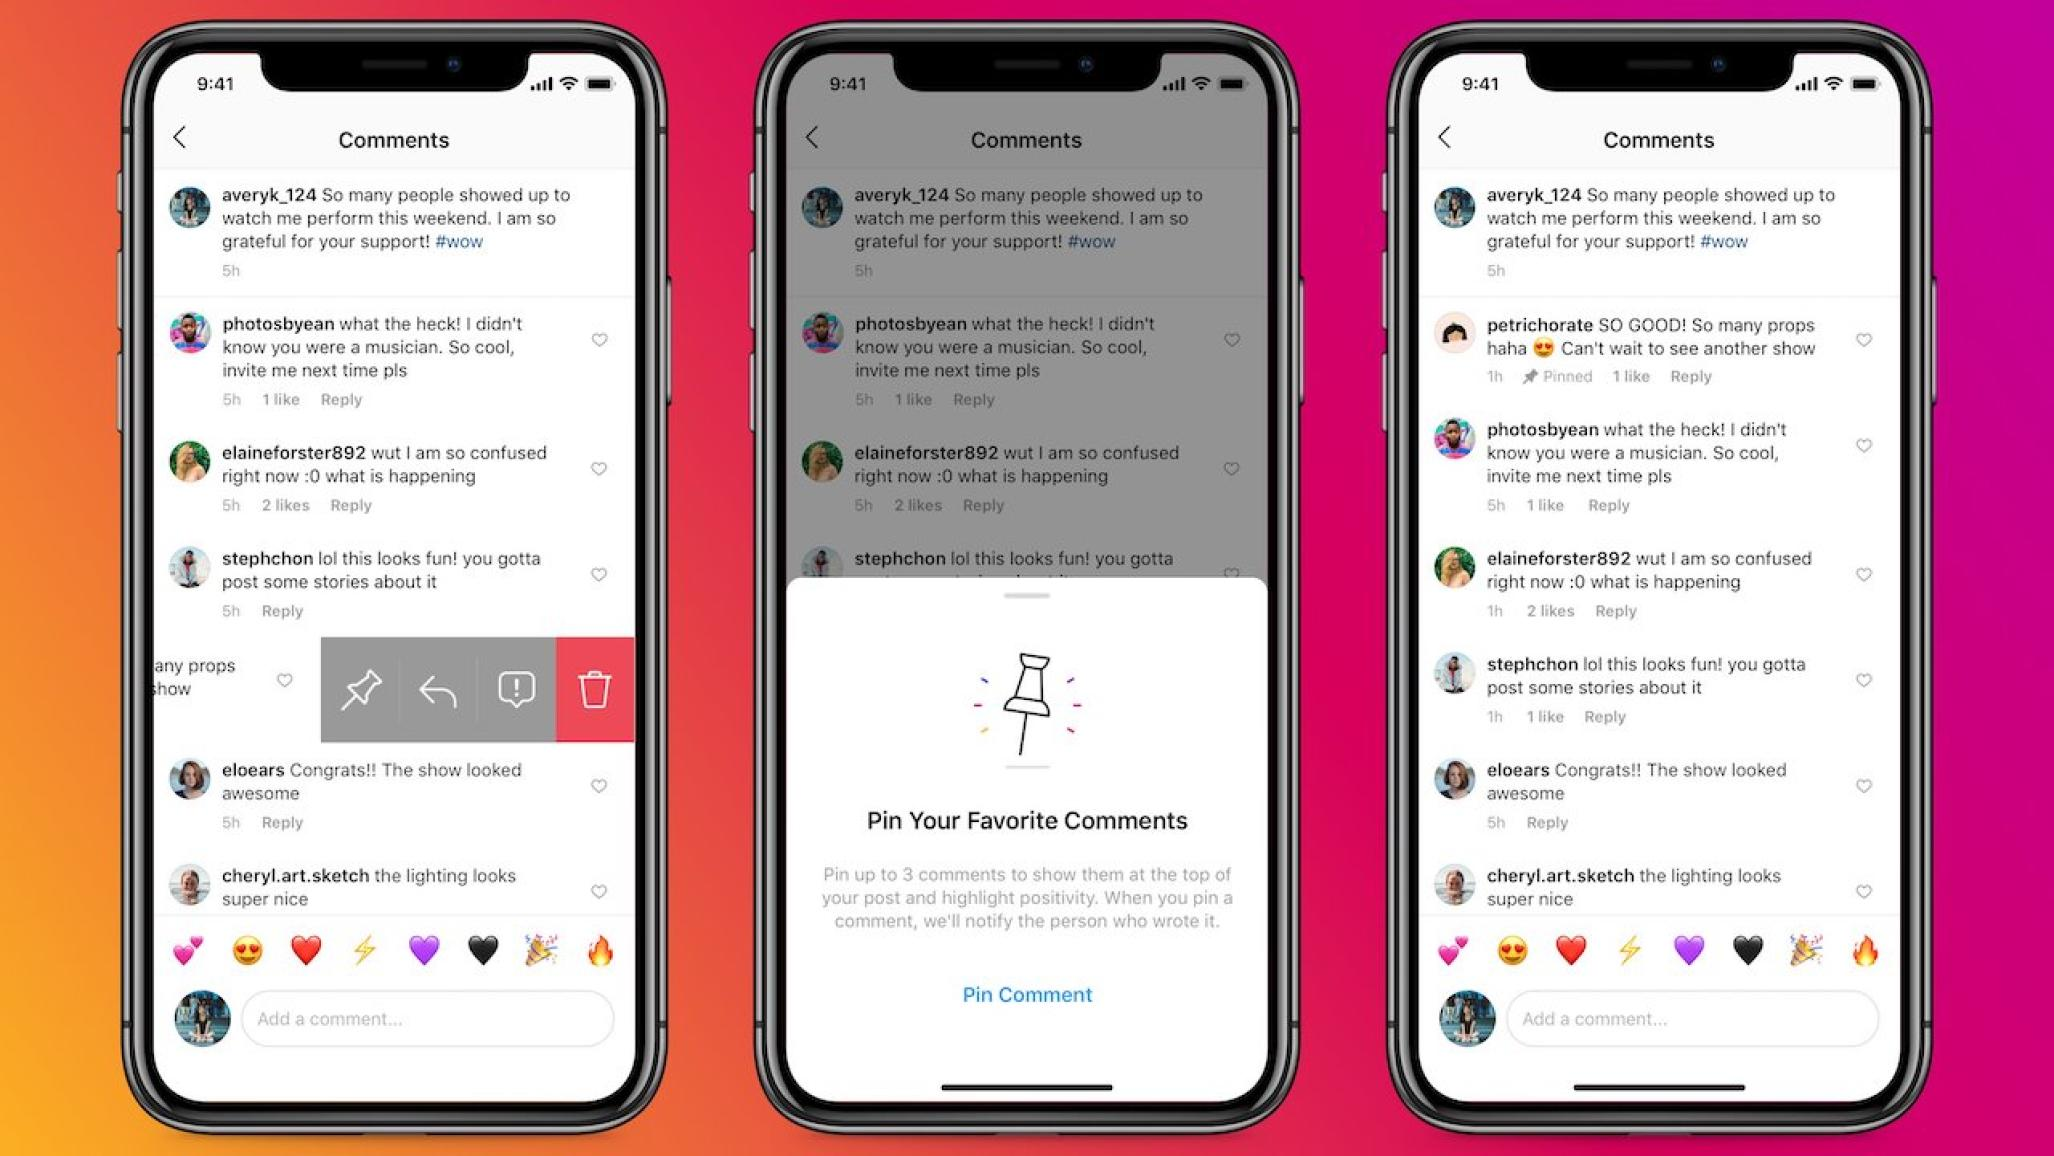 Instagram Rolls Out Ability to Pin Up to Three Comments on Post Interaction Streams